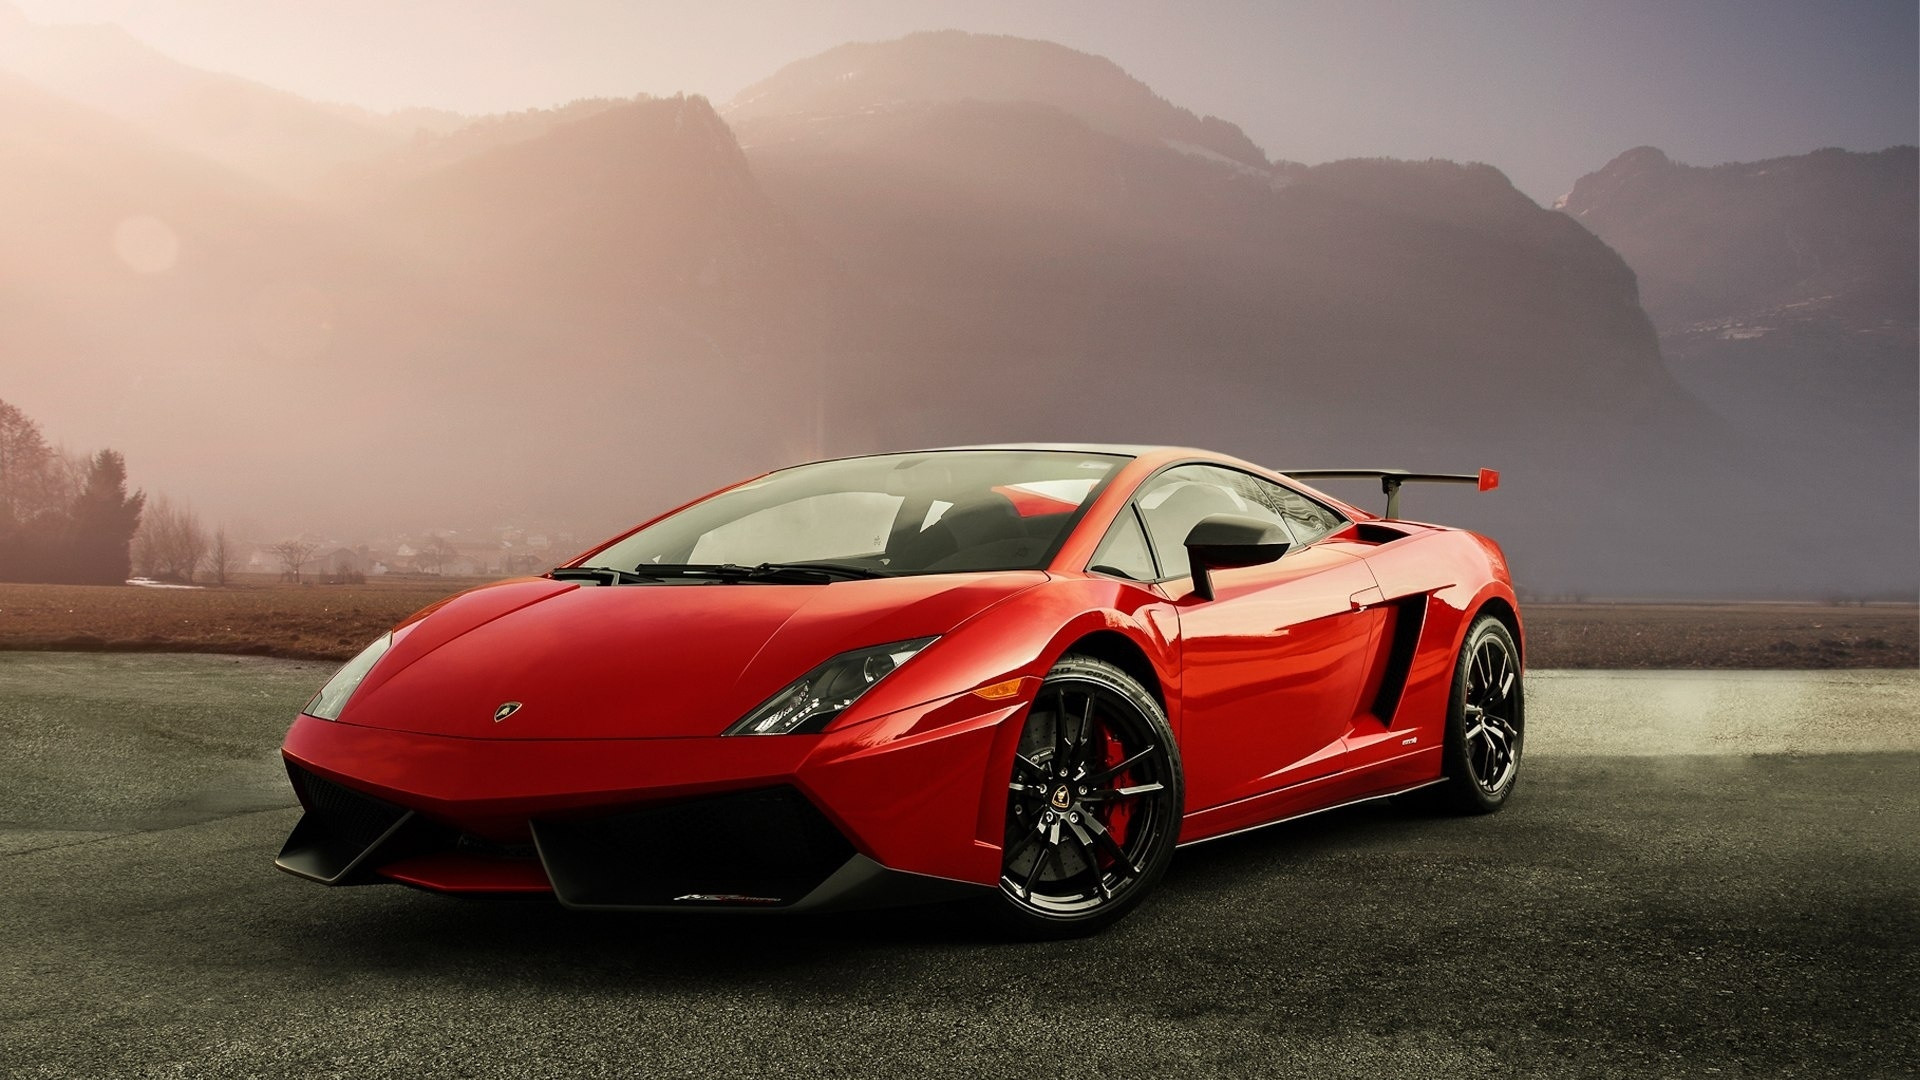 1920x1080 ... Wallpapers lamborghini black HD Images HD 1080p : Get Free top quality  Images HD 1080p for your .